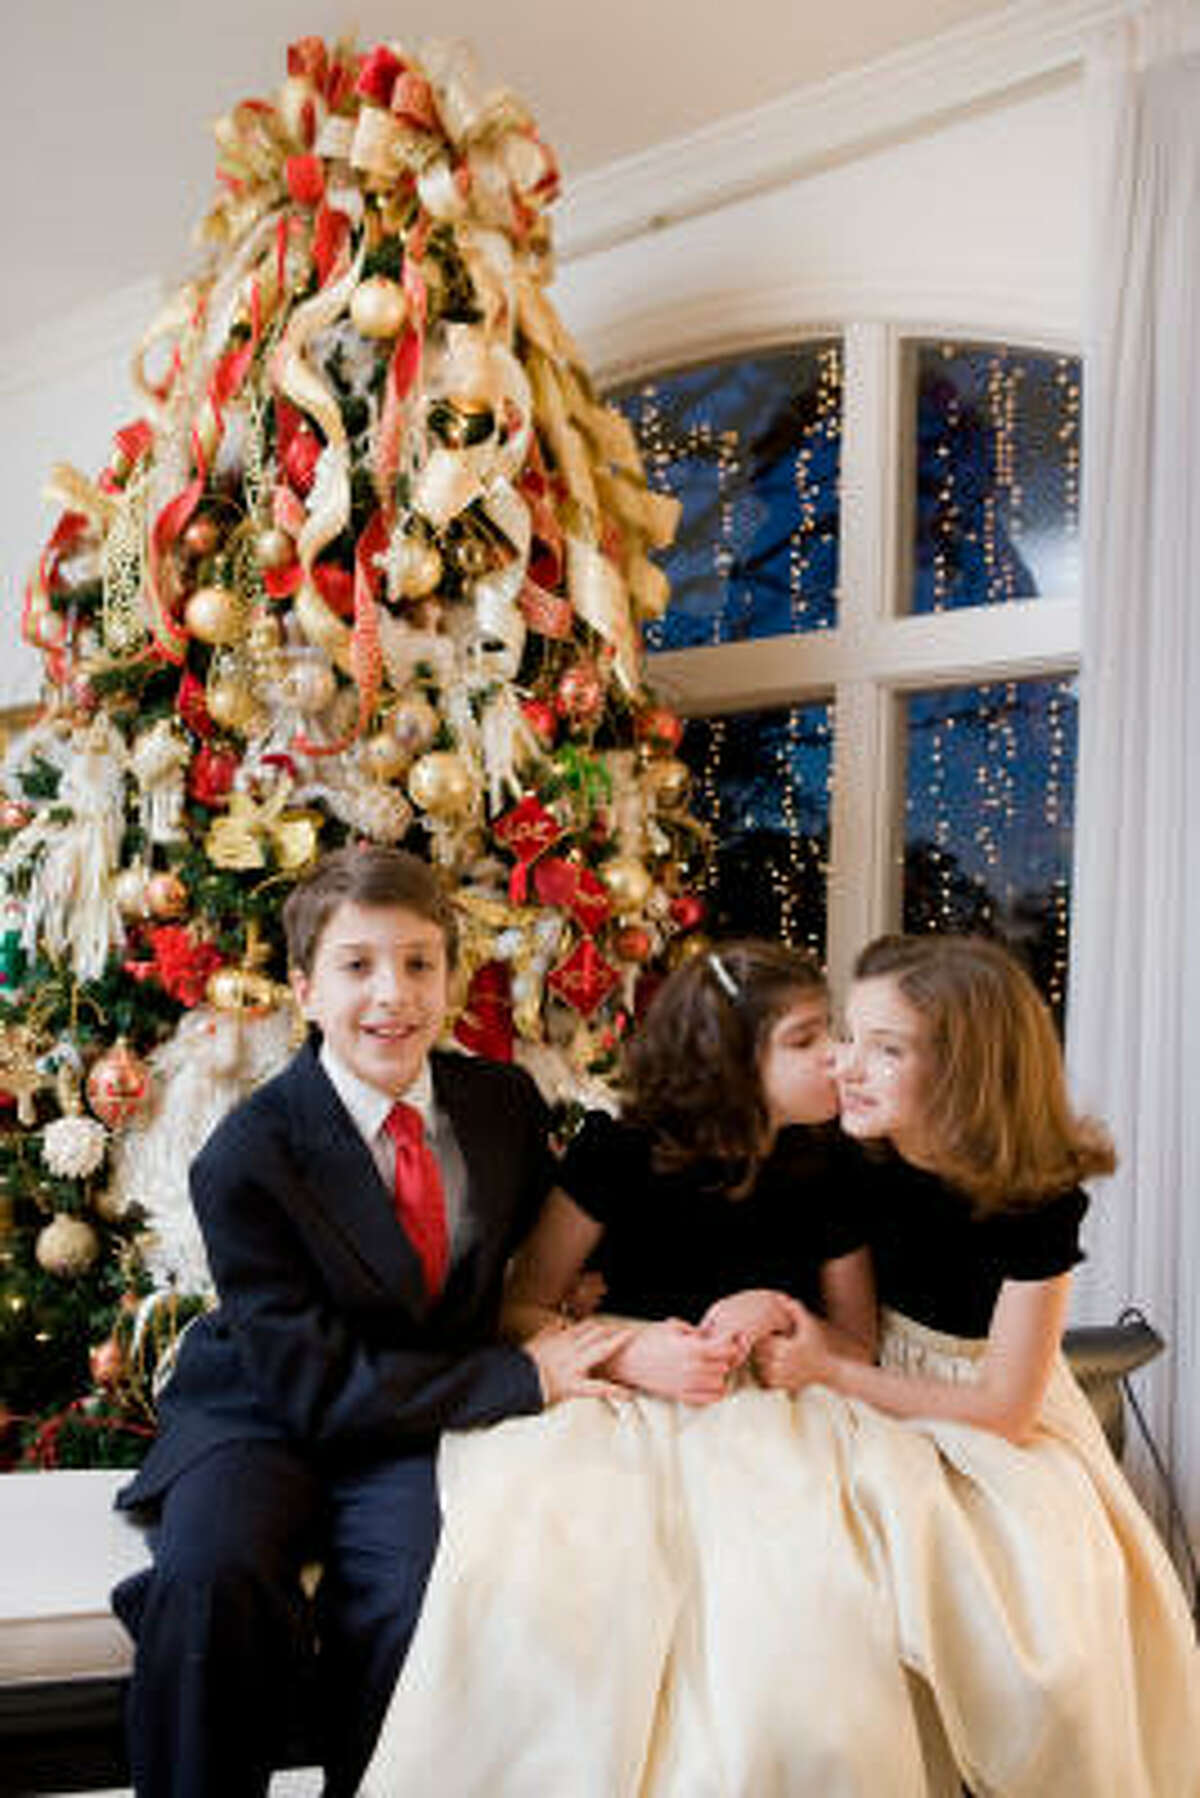 Chance, Chandler and Channing Allshouse have been hanging ornaments on their own trees since age 2 ½.